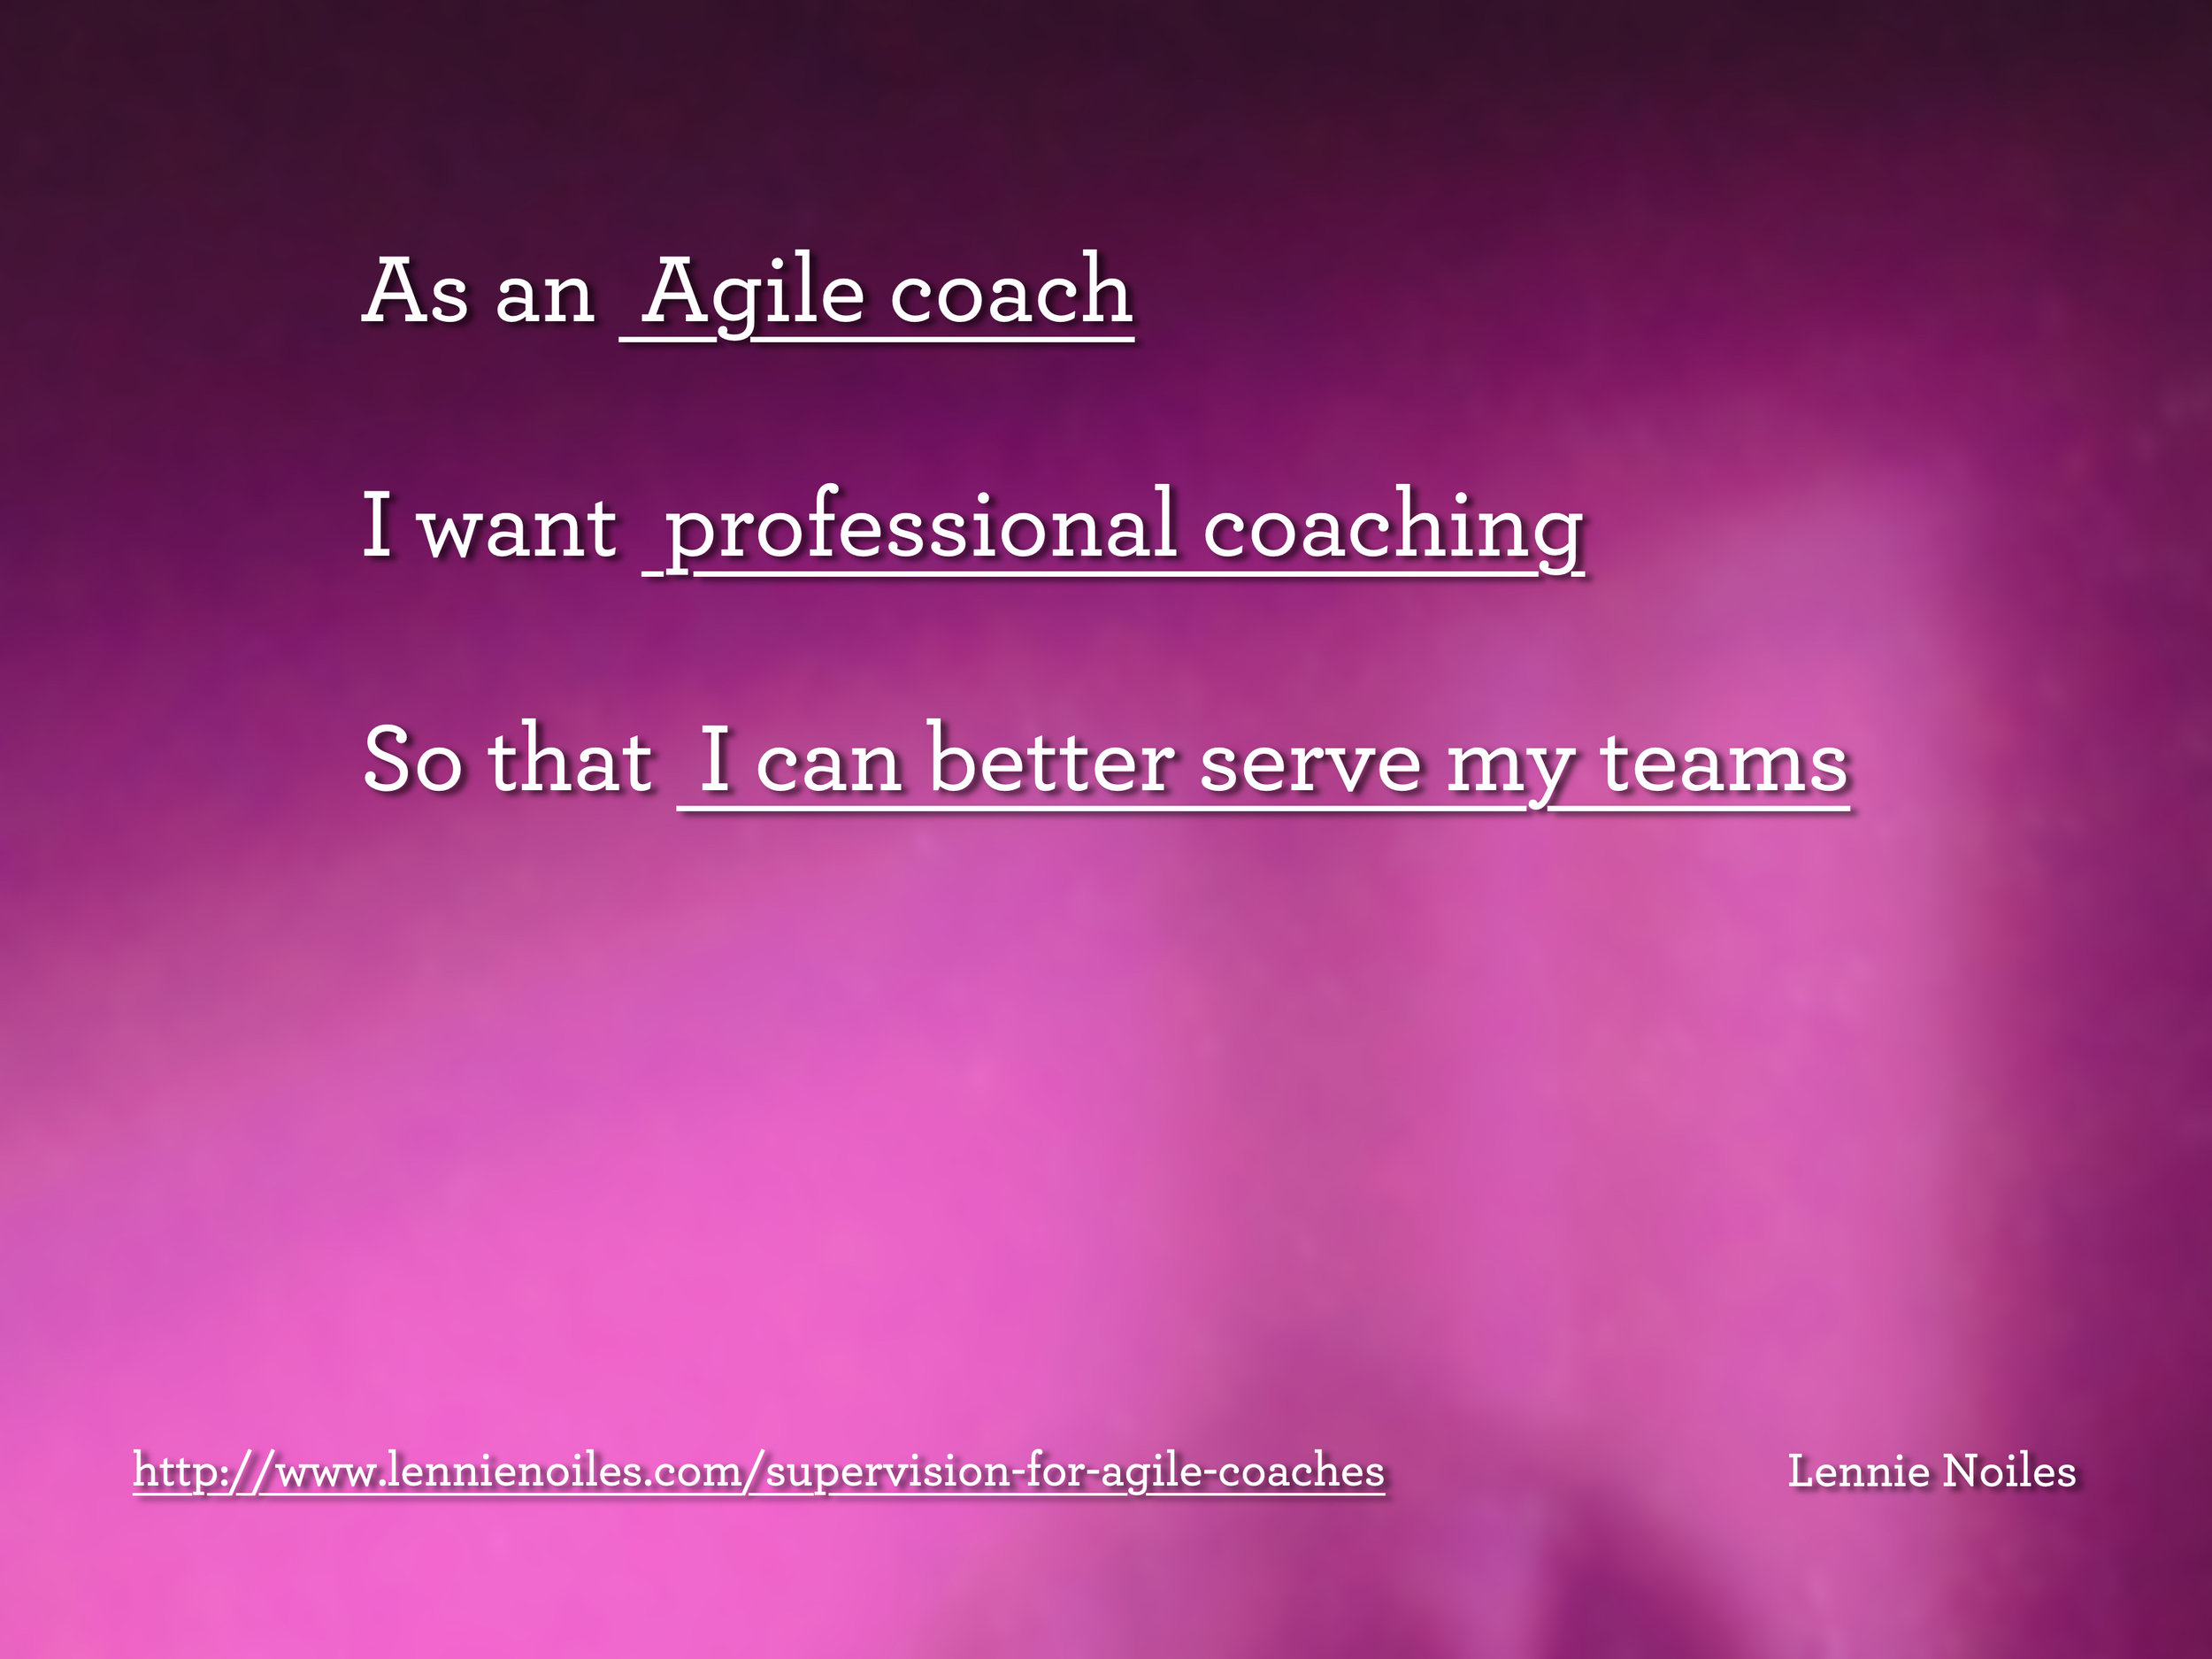 As an Agile coach.jpg